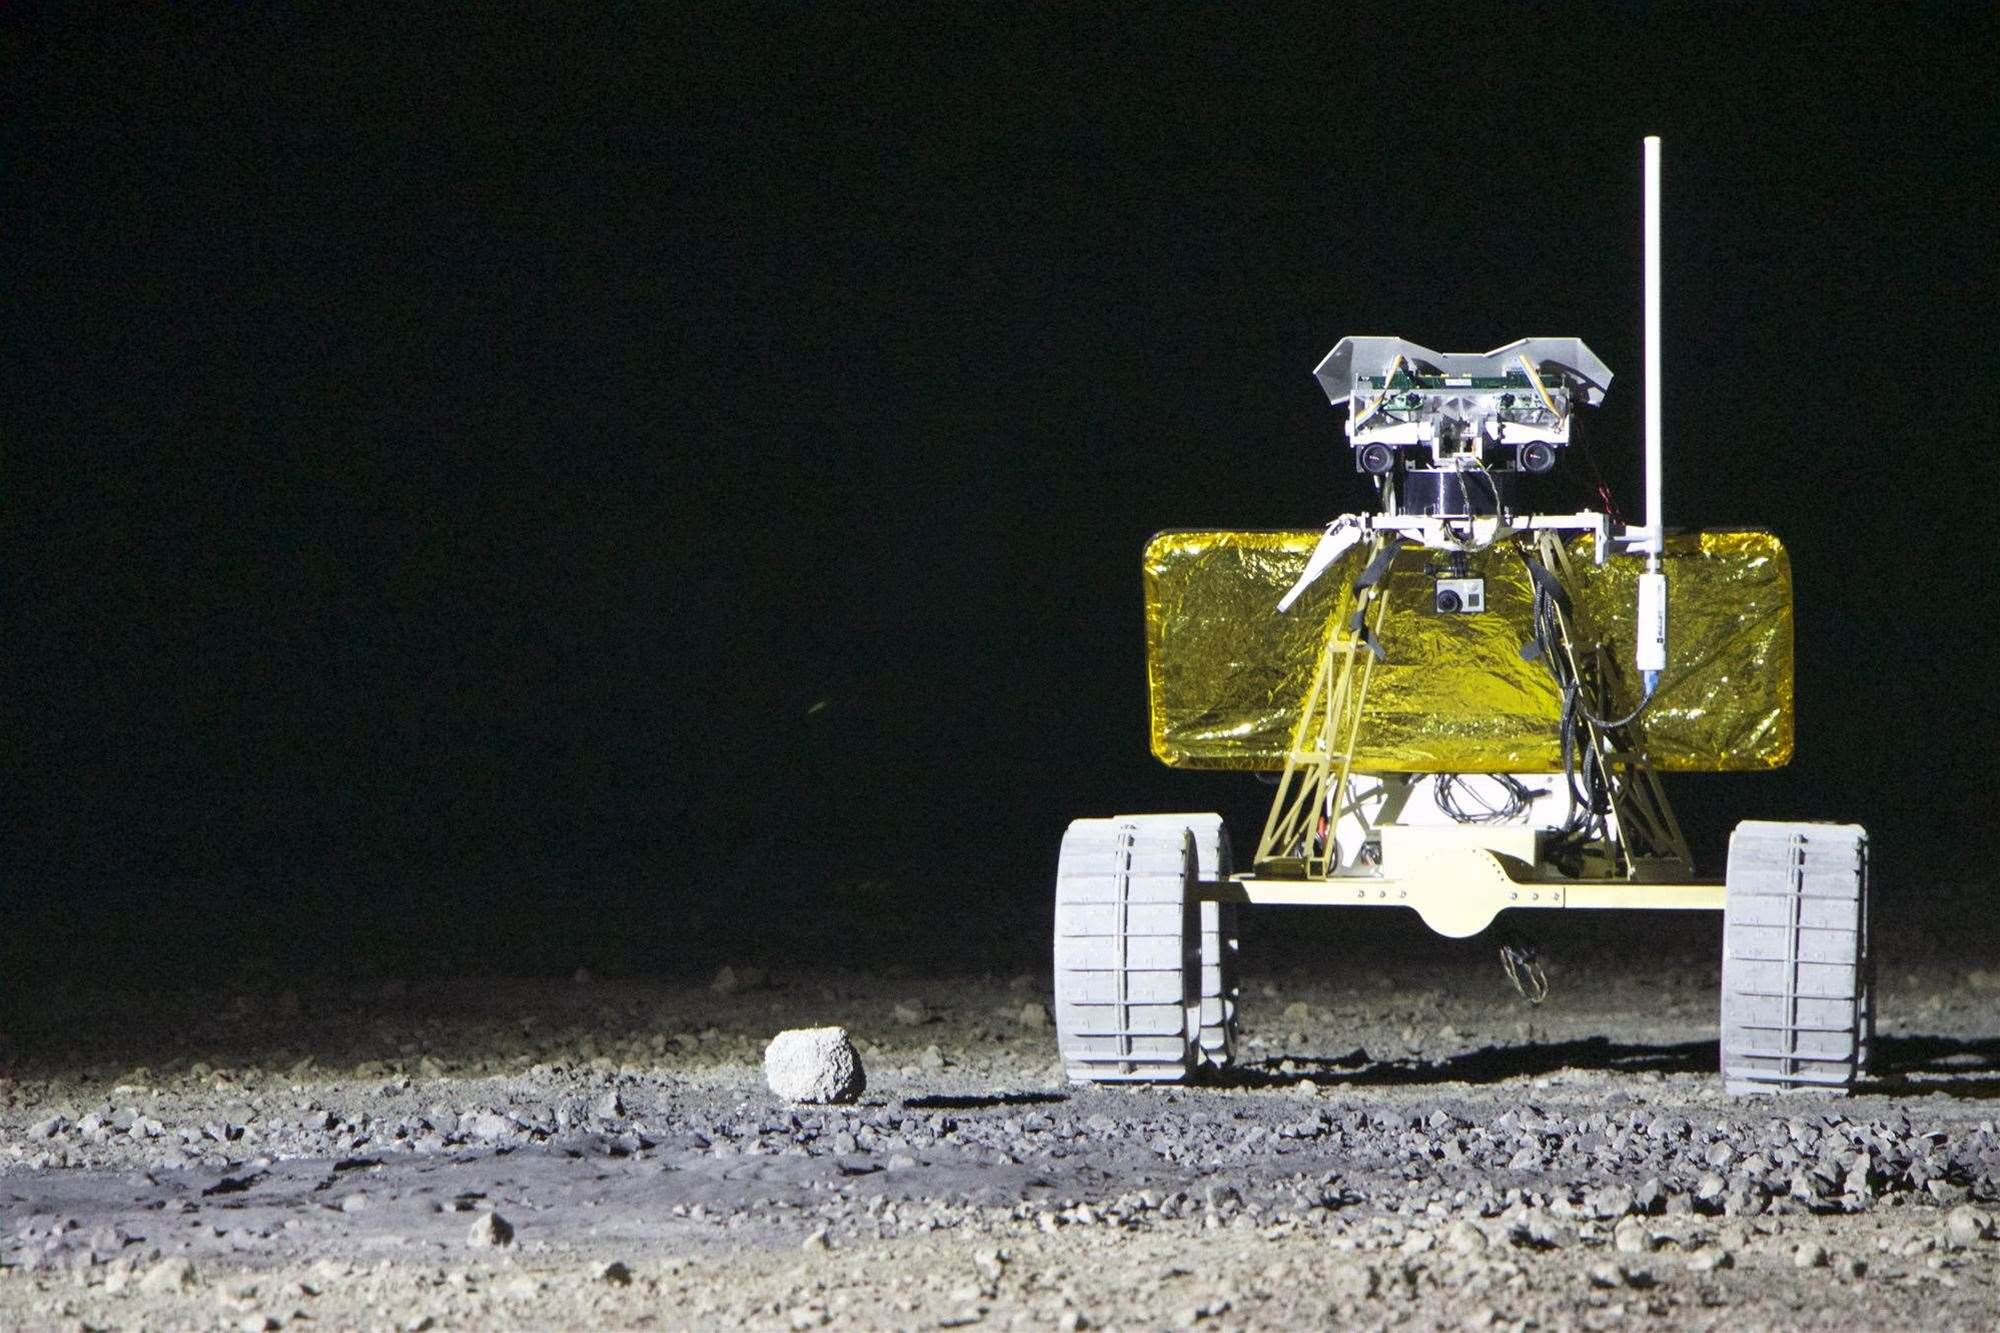 Moon Rover 'Andy' Takes Home Two XPrize Milestone Awards, Totaling $750,000